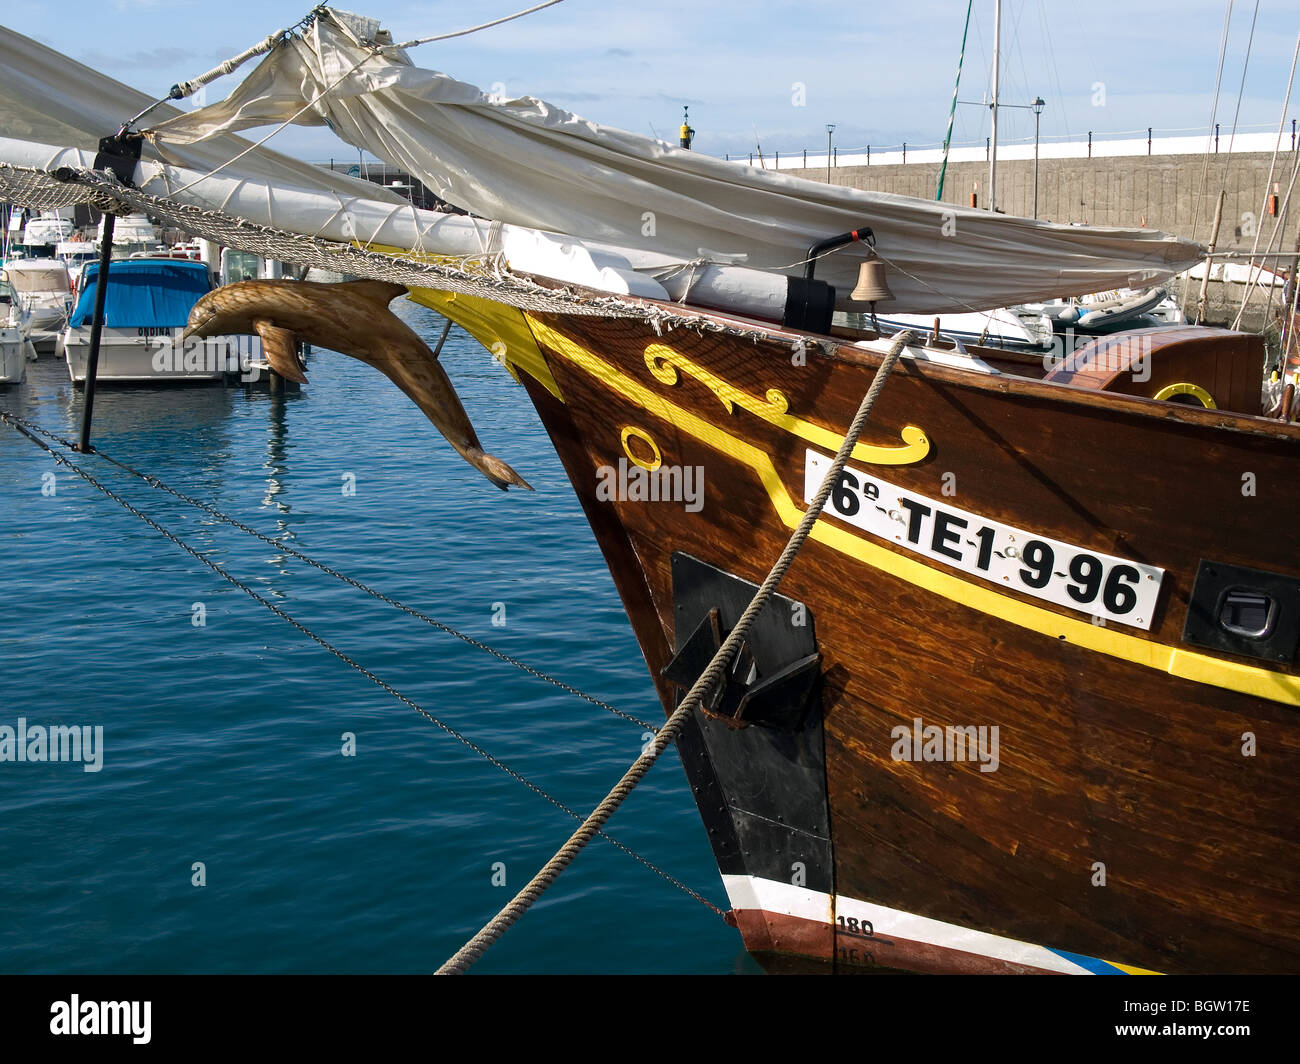 Bow of a wooden boat used to take tourists whale and dolphin watching in the marina at Los Gigantes Tenerife - Stock Image